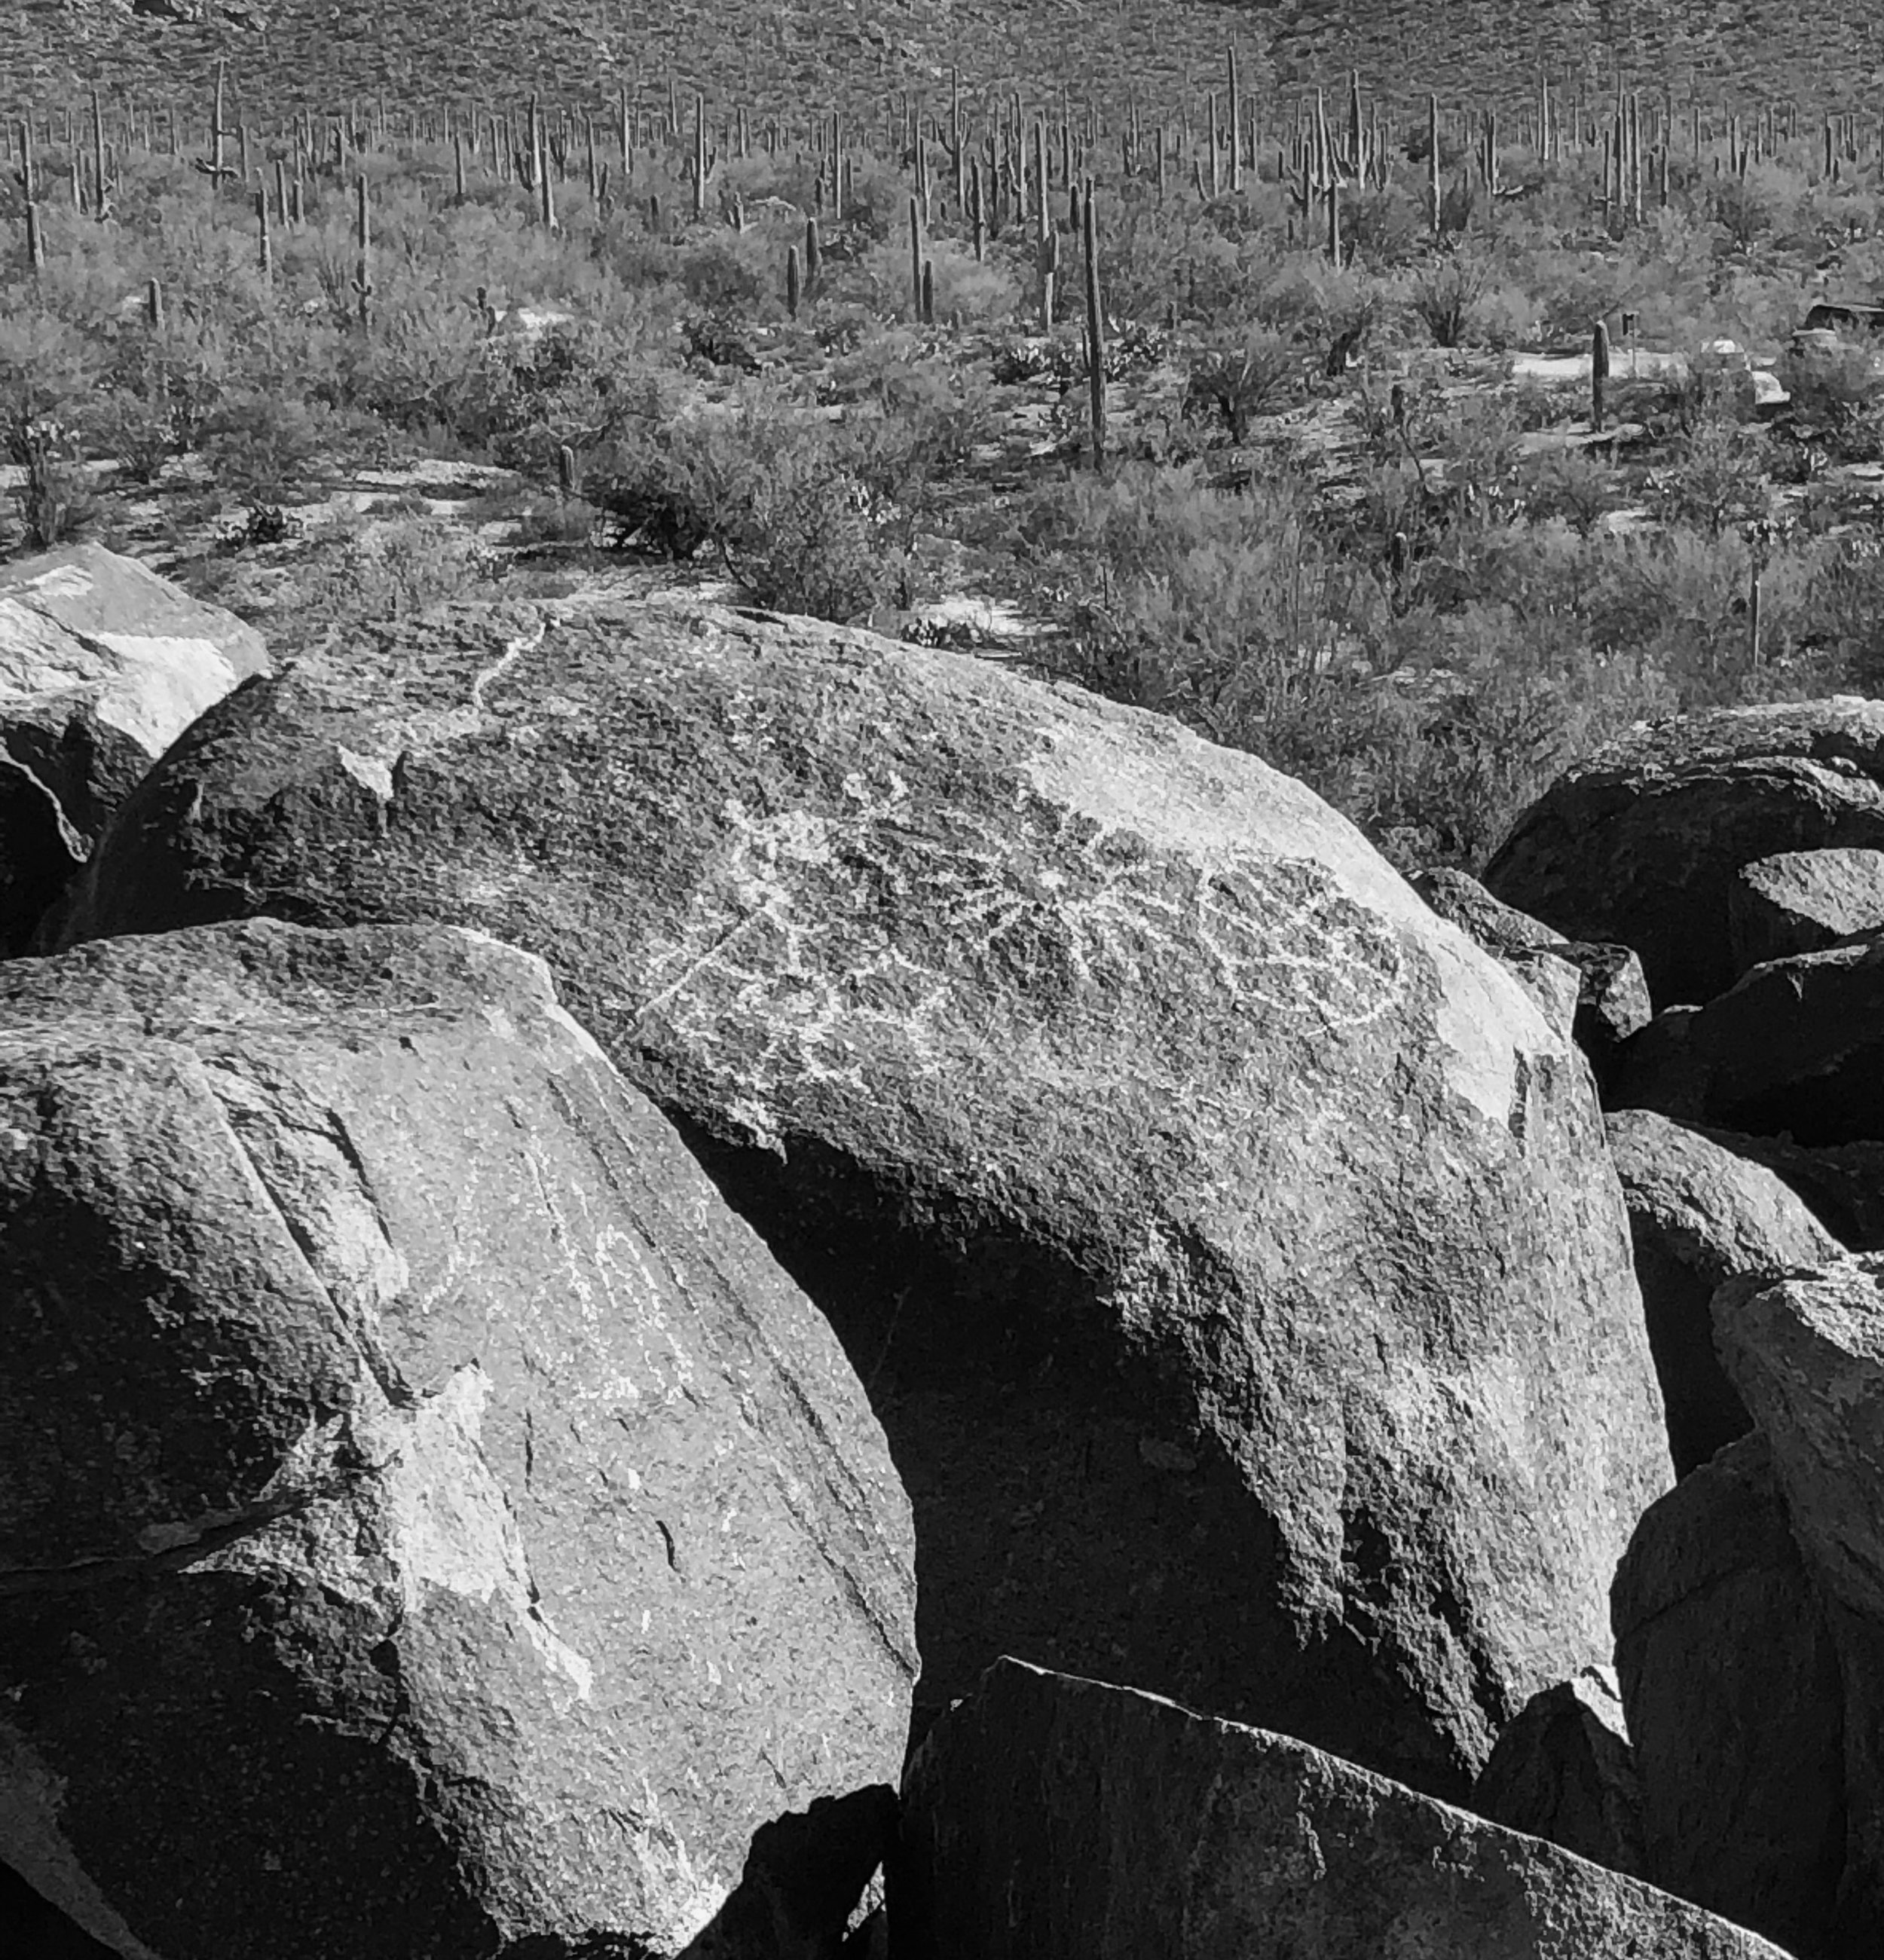 Petroglyphs as seen from the Signal Hill picnic area.